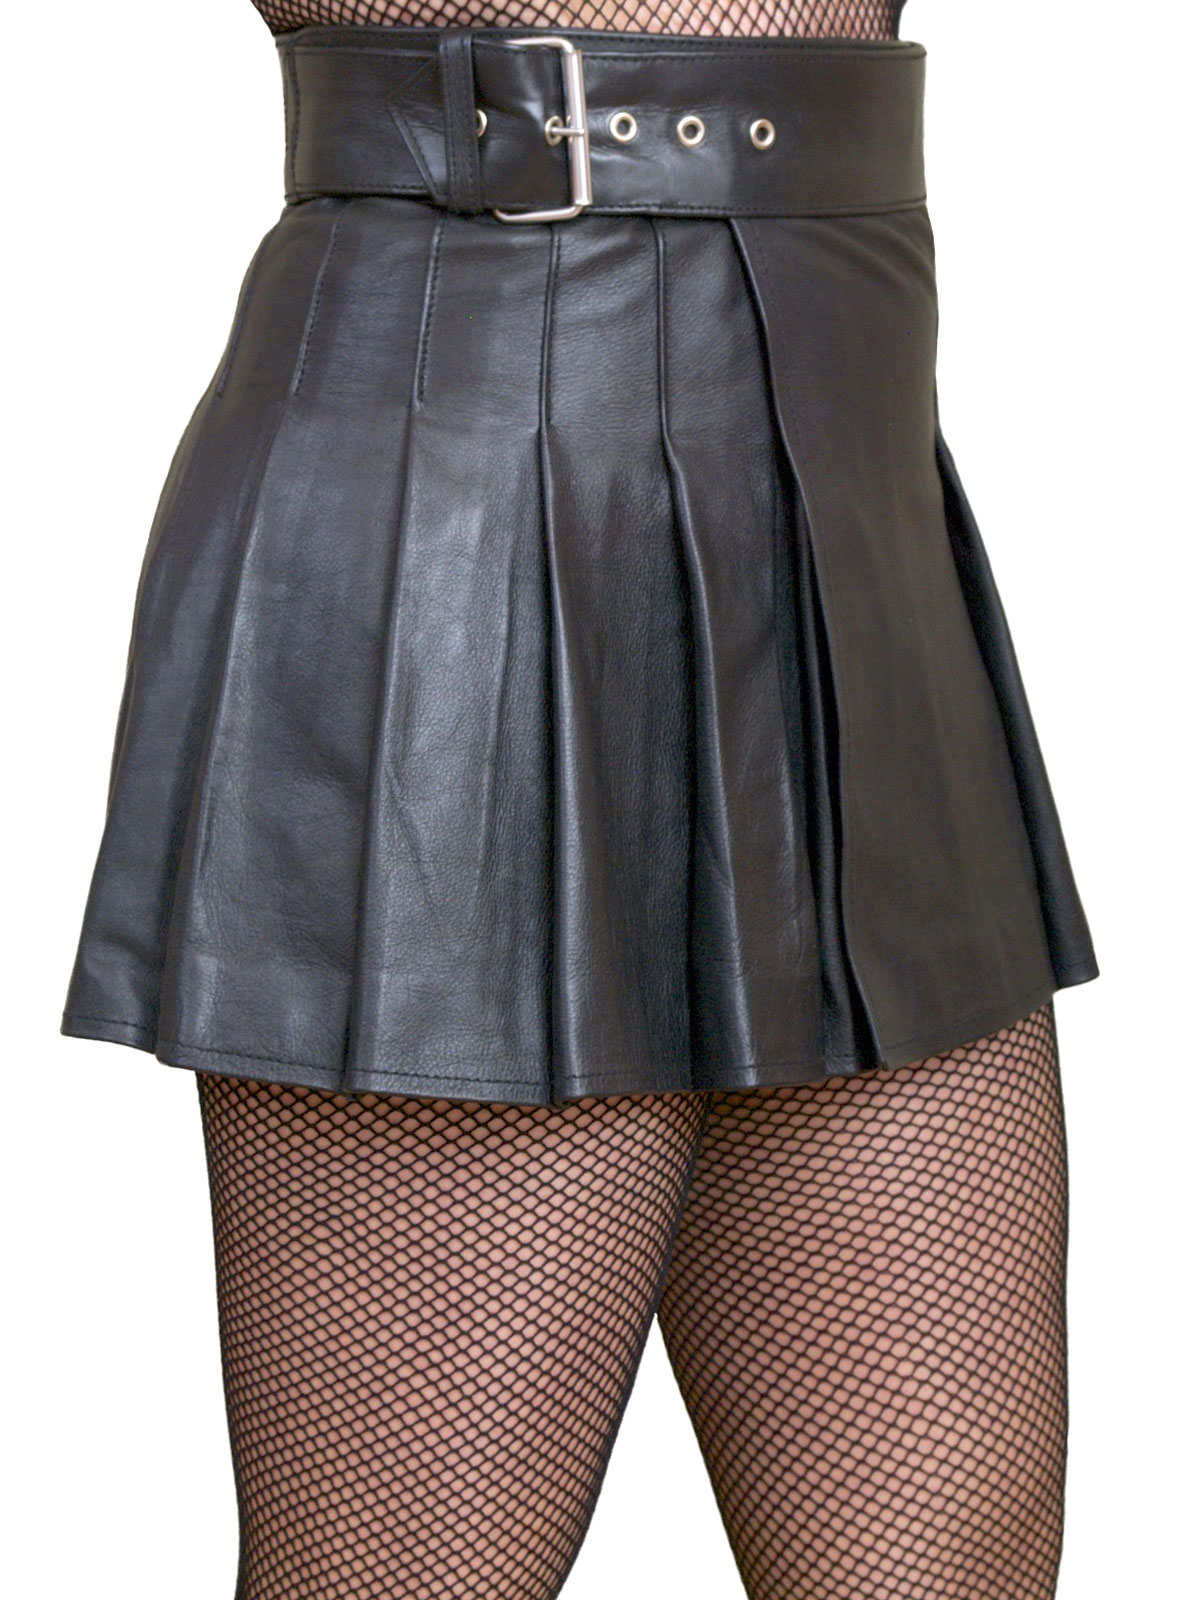 Leather Mini Skirts Uk - Dress Ala